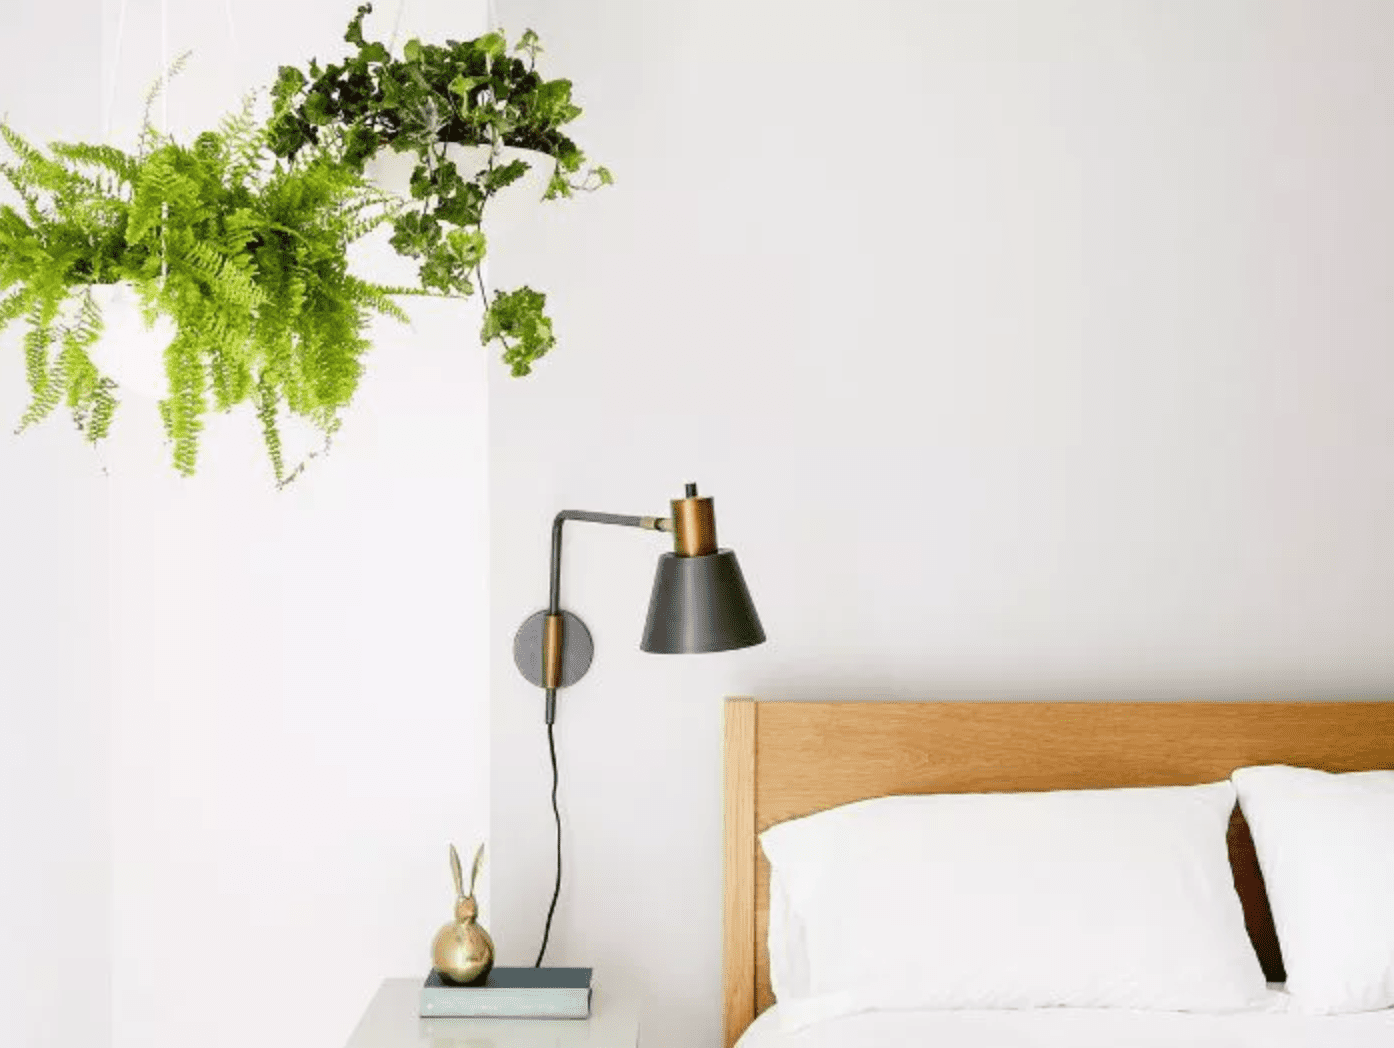 Minimalist bedroom with white walls, wooden headboard, sconce, and hanging plant in corner